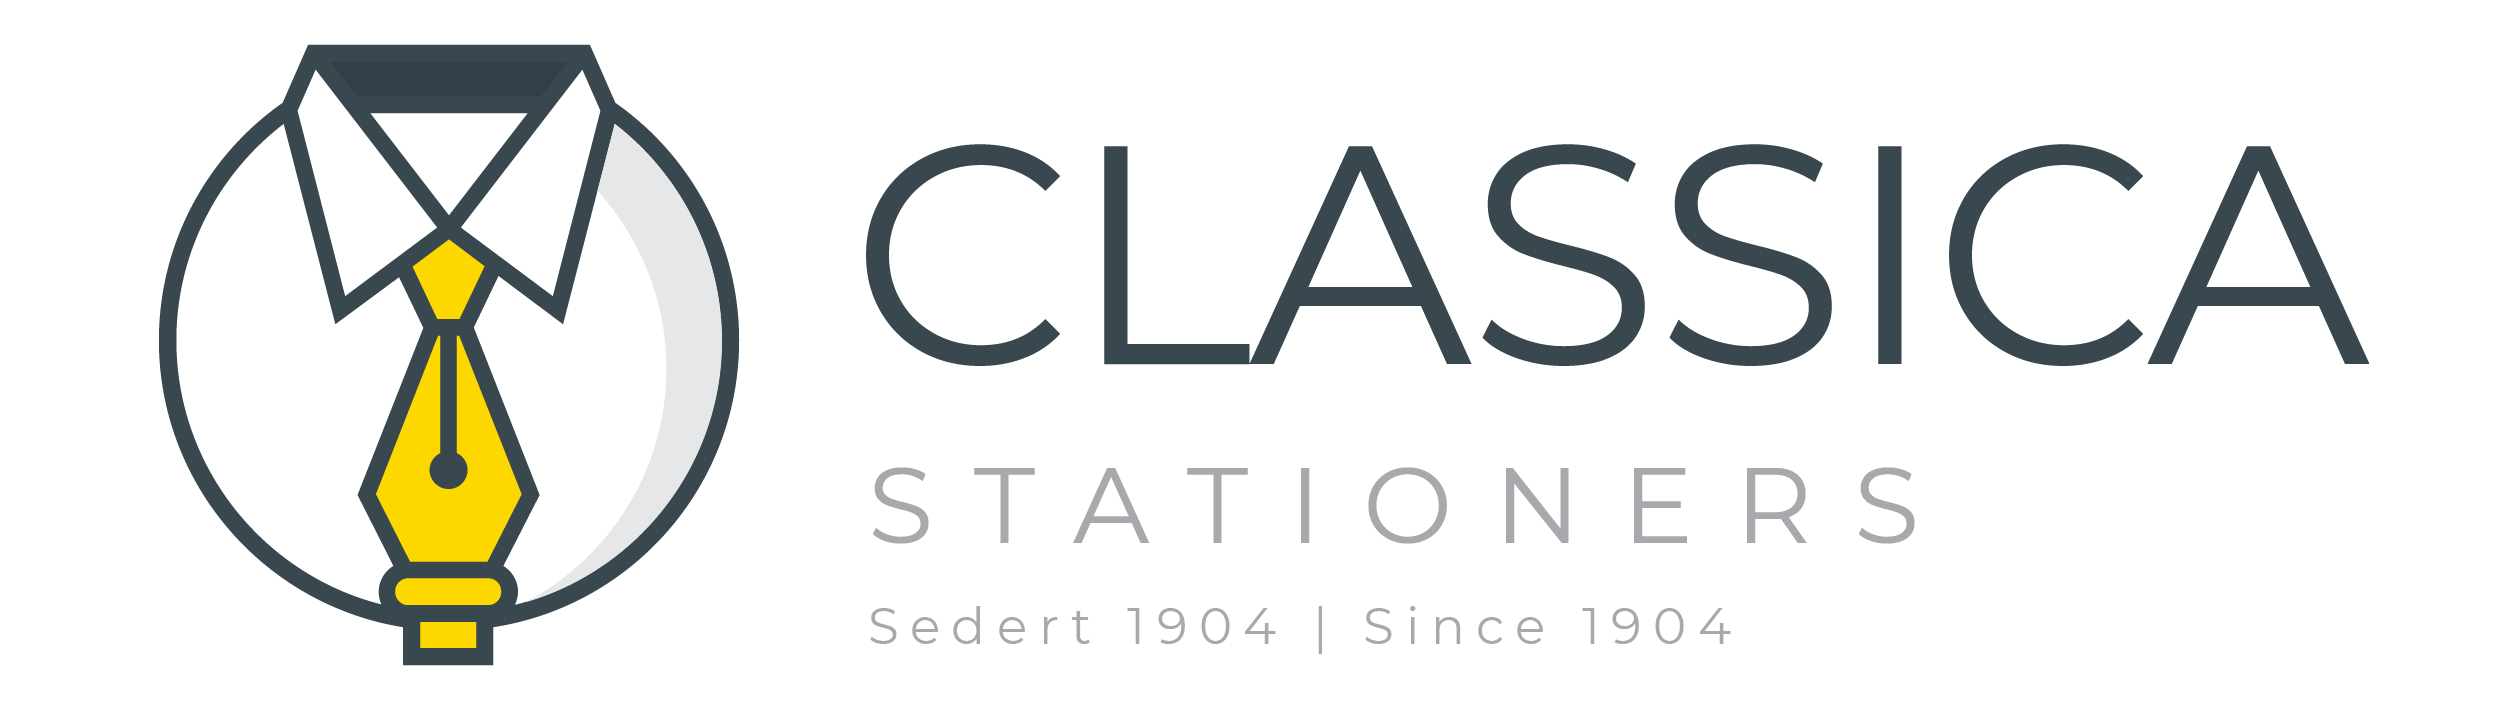 Classica Stationers